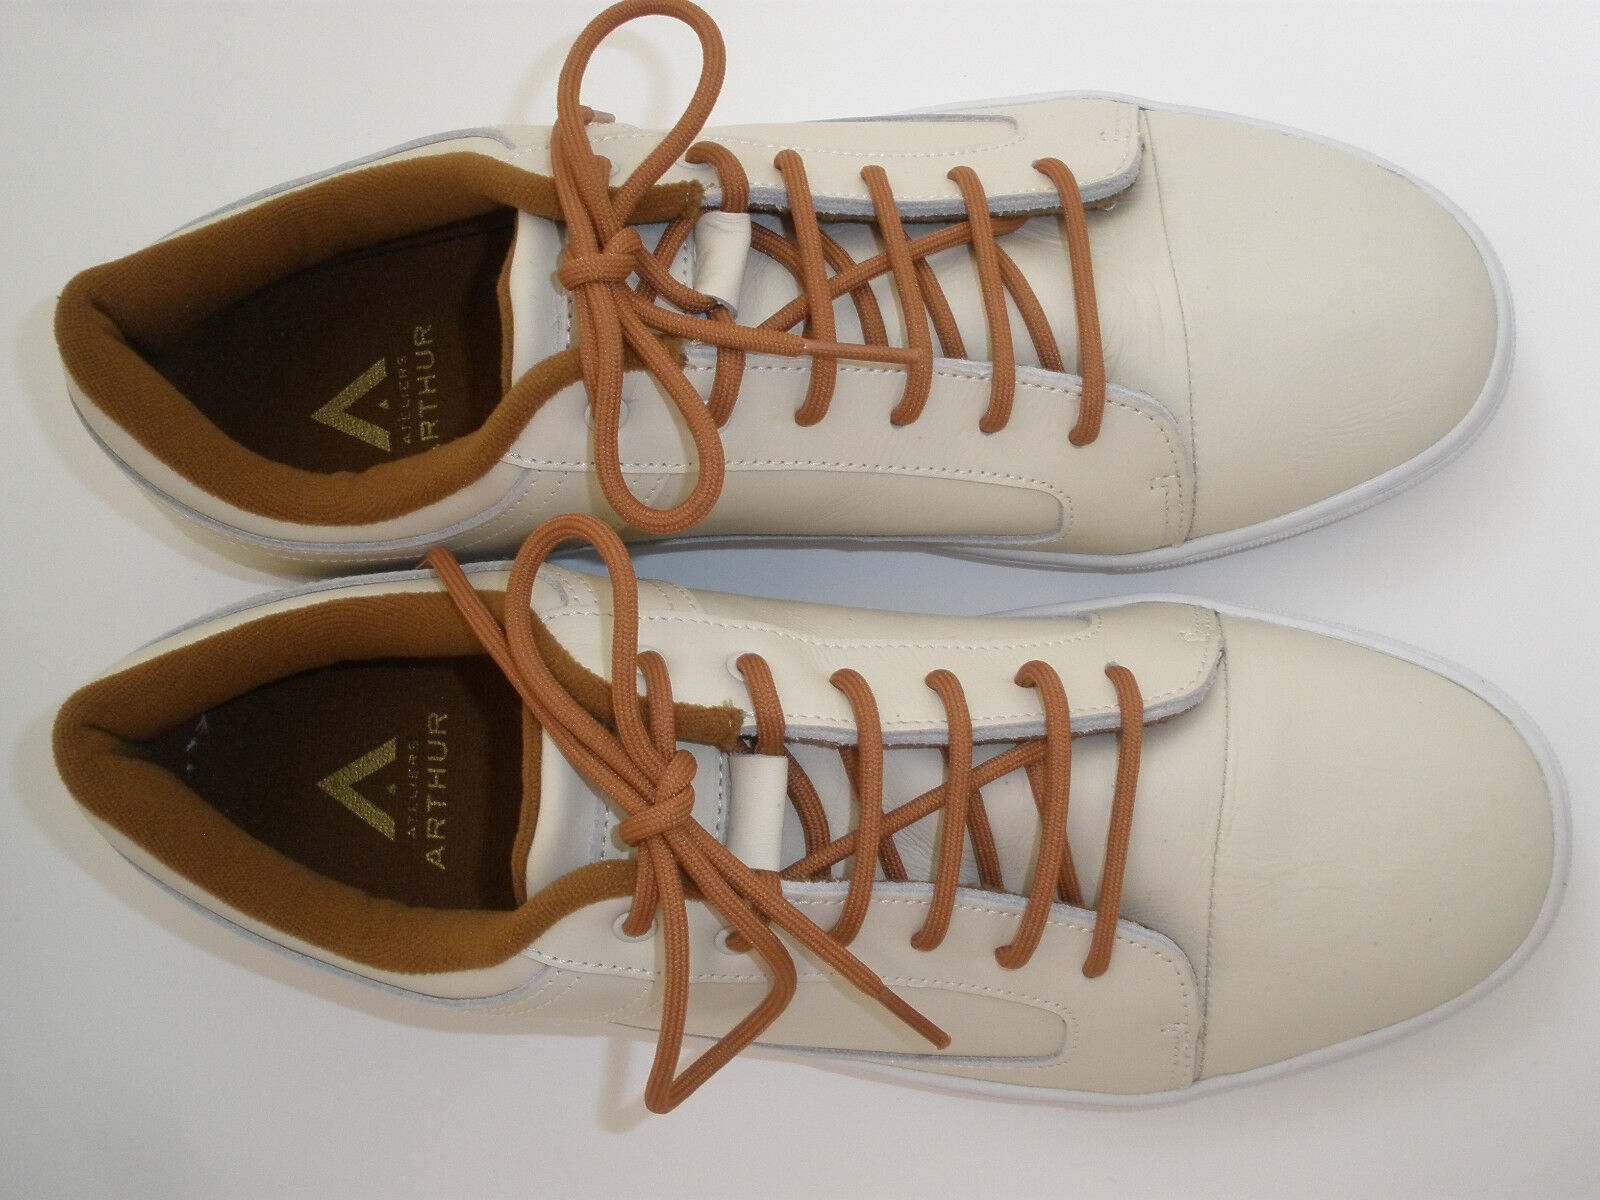 ATELIERS ARTHUR LEATHER SNEAKERS 12 Uomo SIZE   12 SNEAKERS EUR 45 HOT RARE 4dbc55